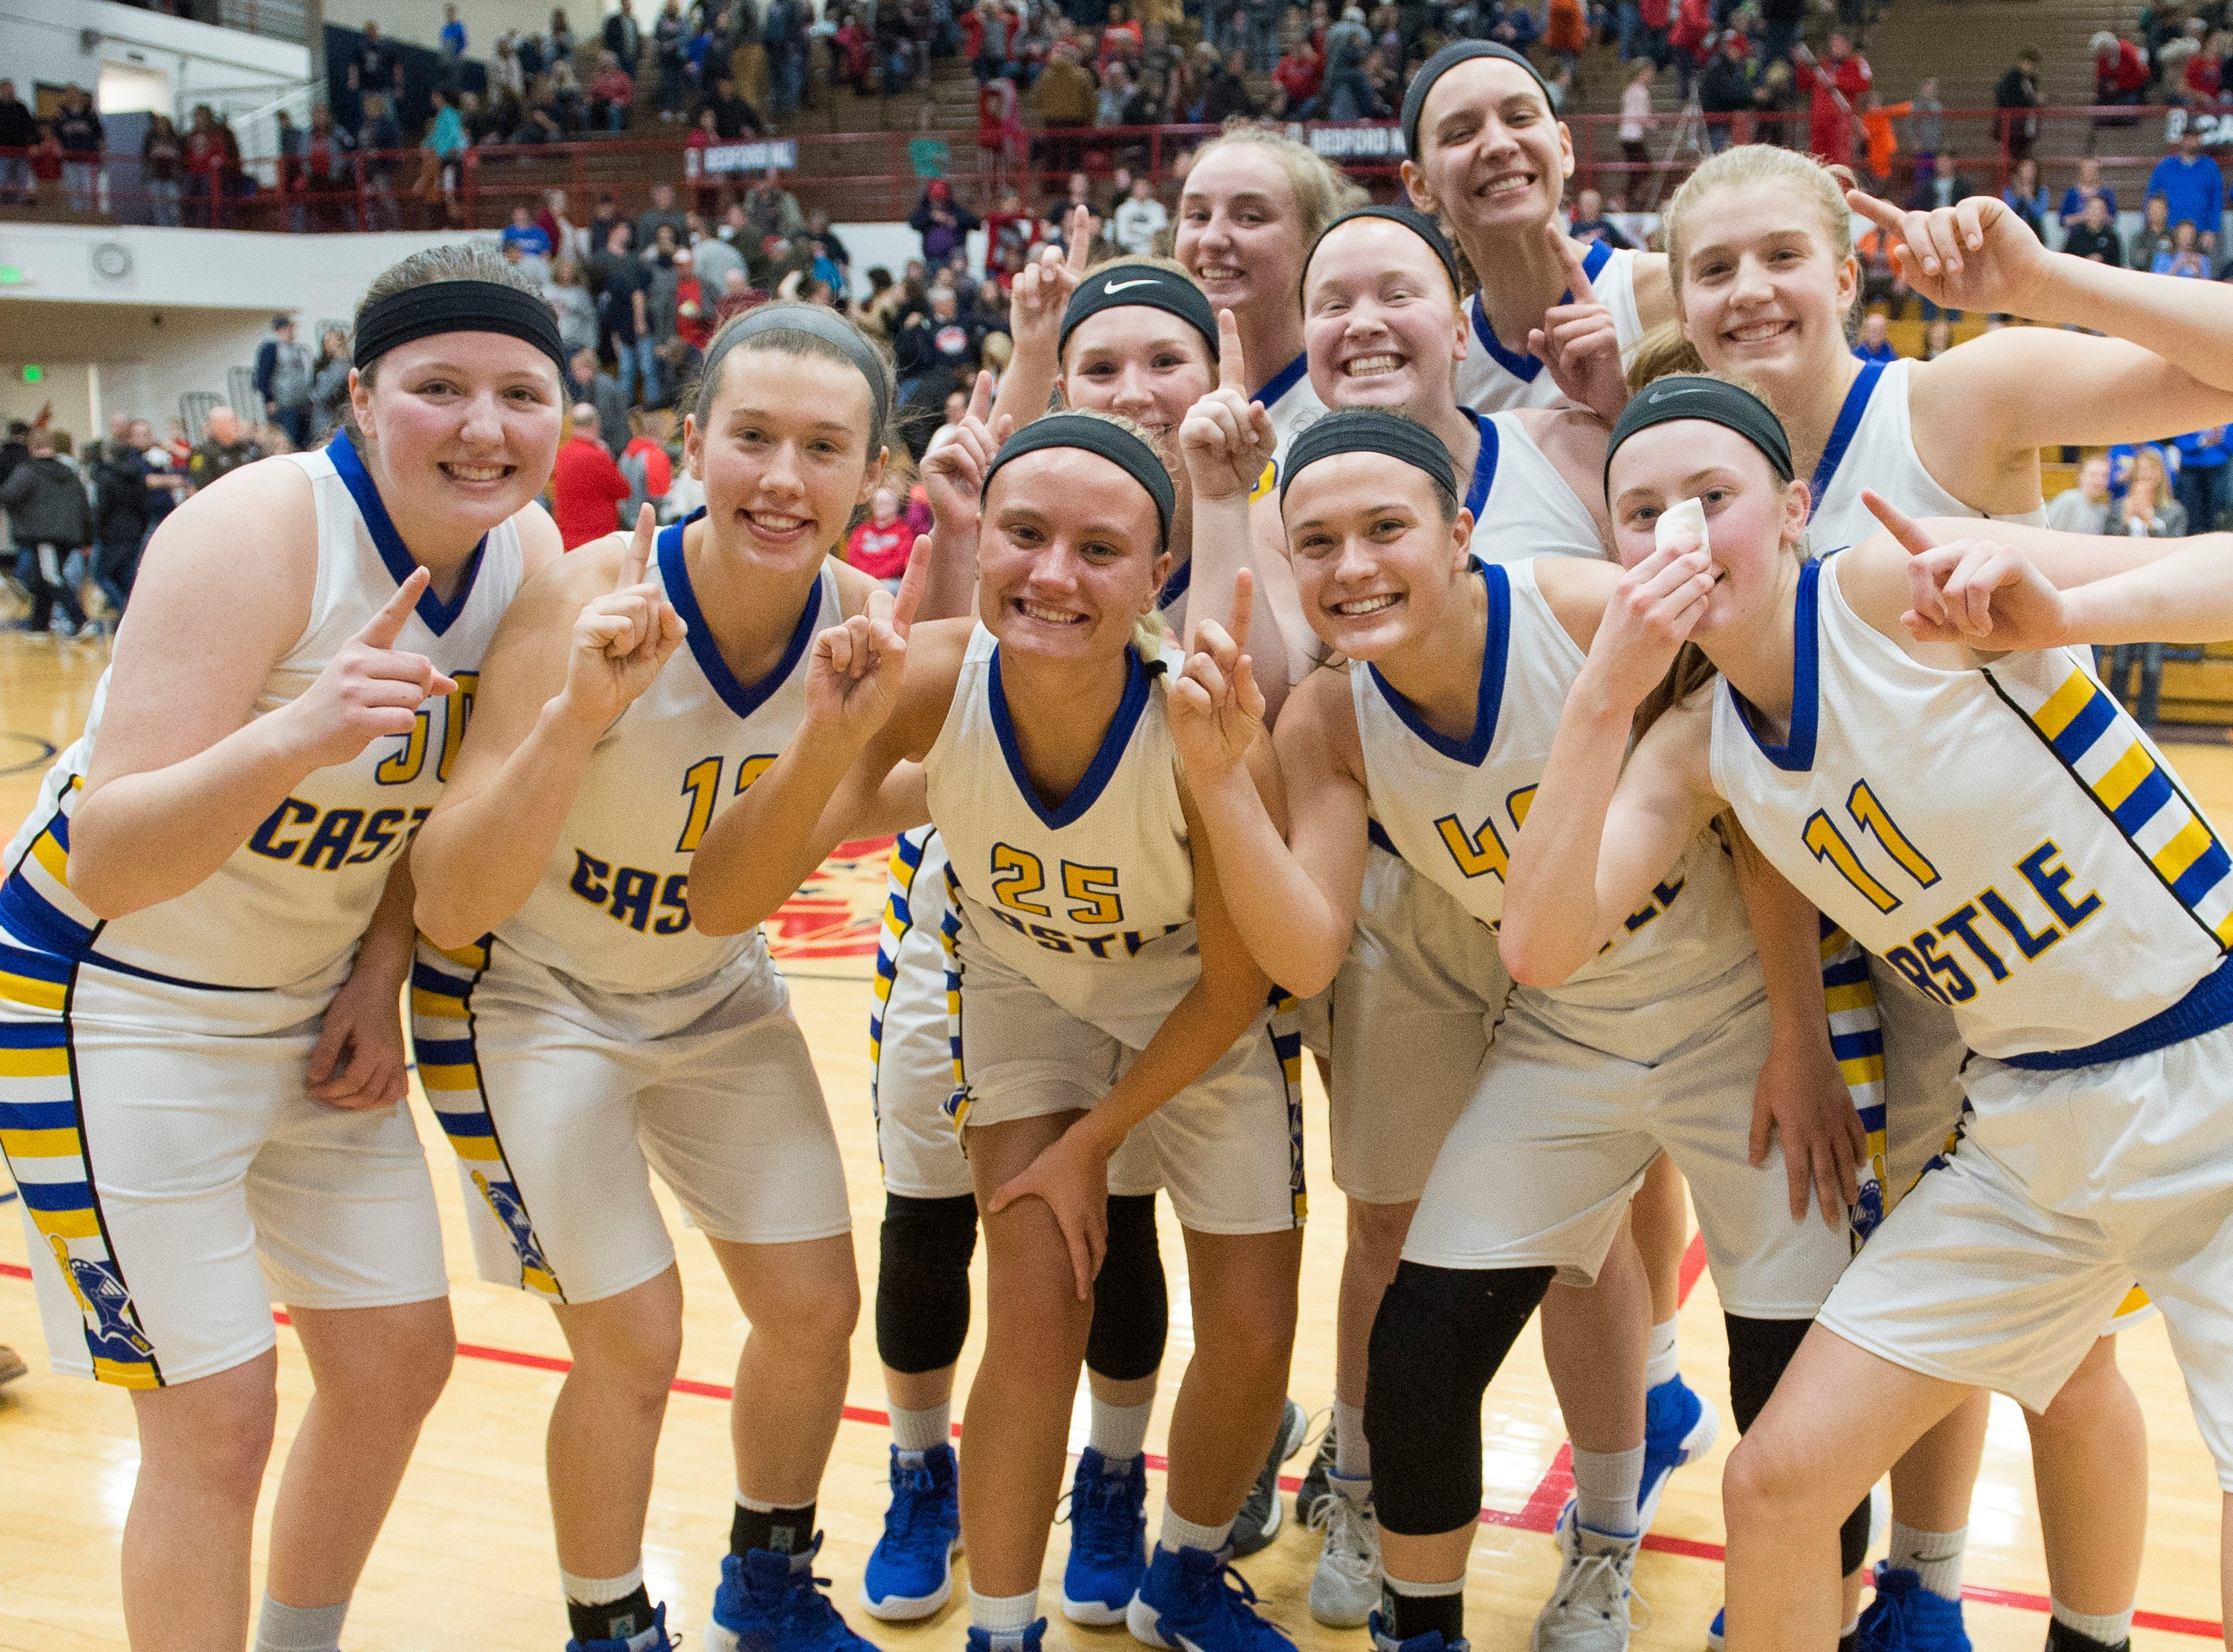 The Castle Knights pose for group shot as they celebrate their IHSAA Girls Basketball Class 4A Regional Championship game win over the Bedford North Lawrence Lady Stars at the Stars Field House in Bedford, Ind. Saturday, Feb. 9, 2019.